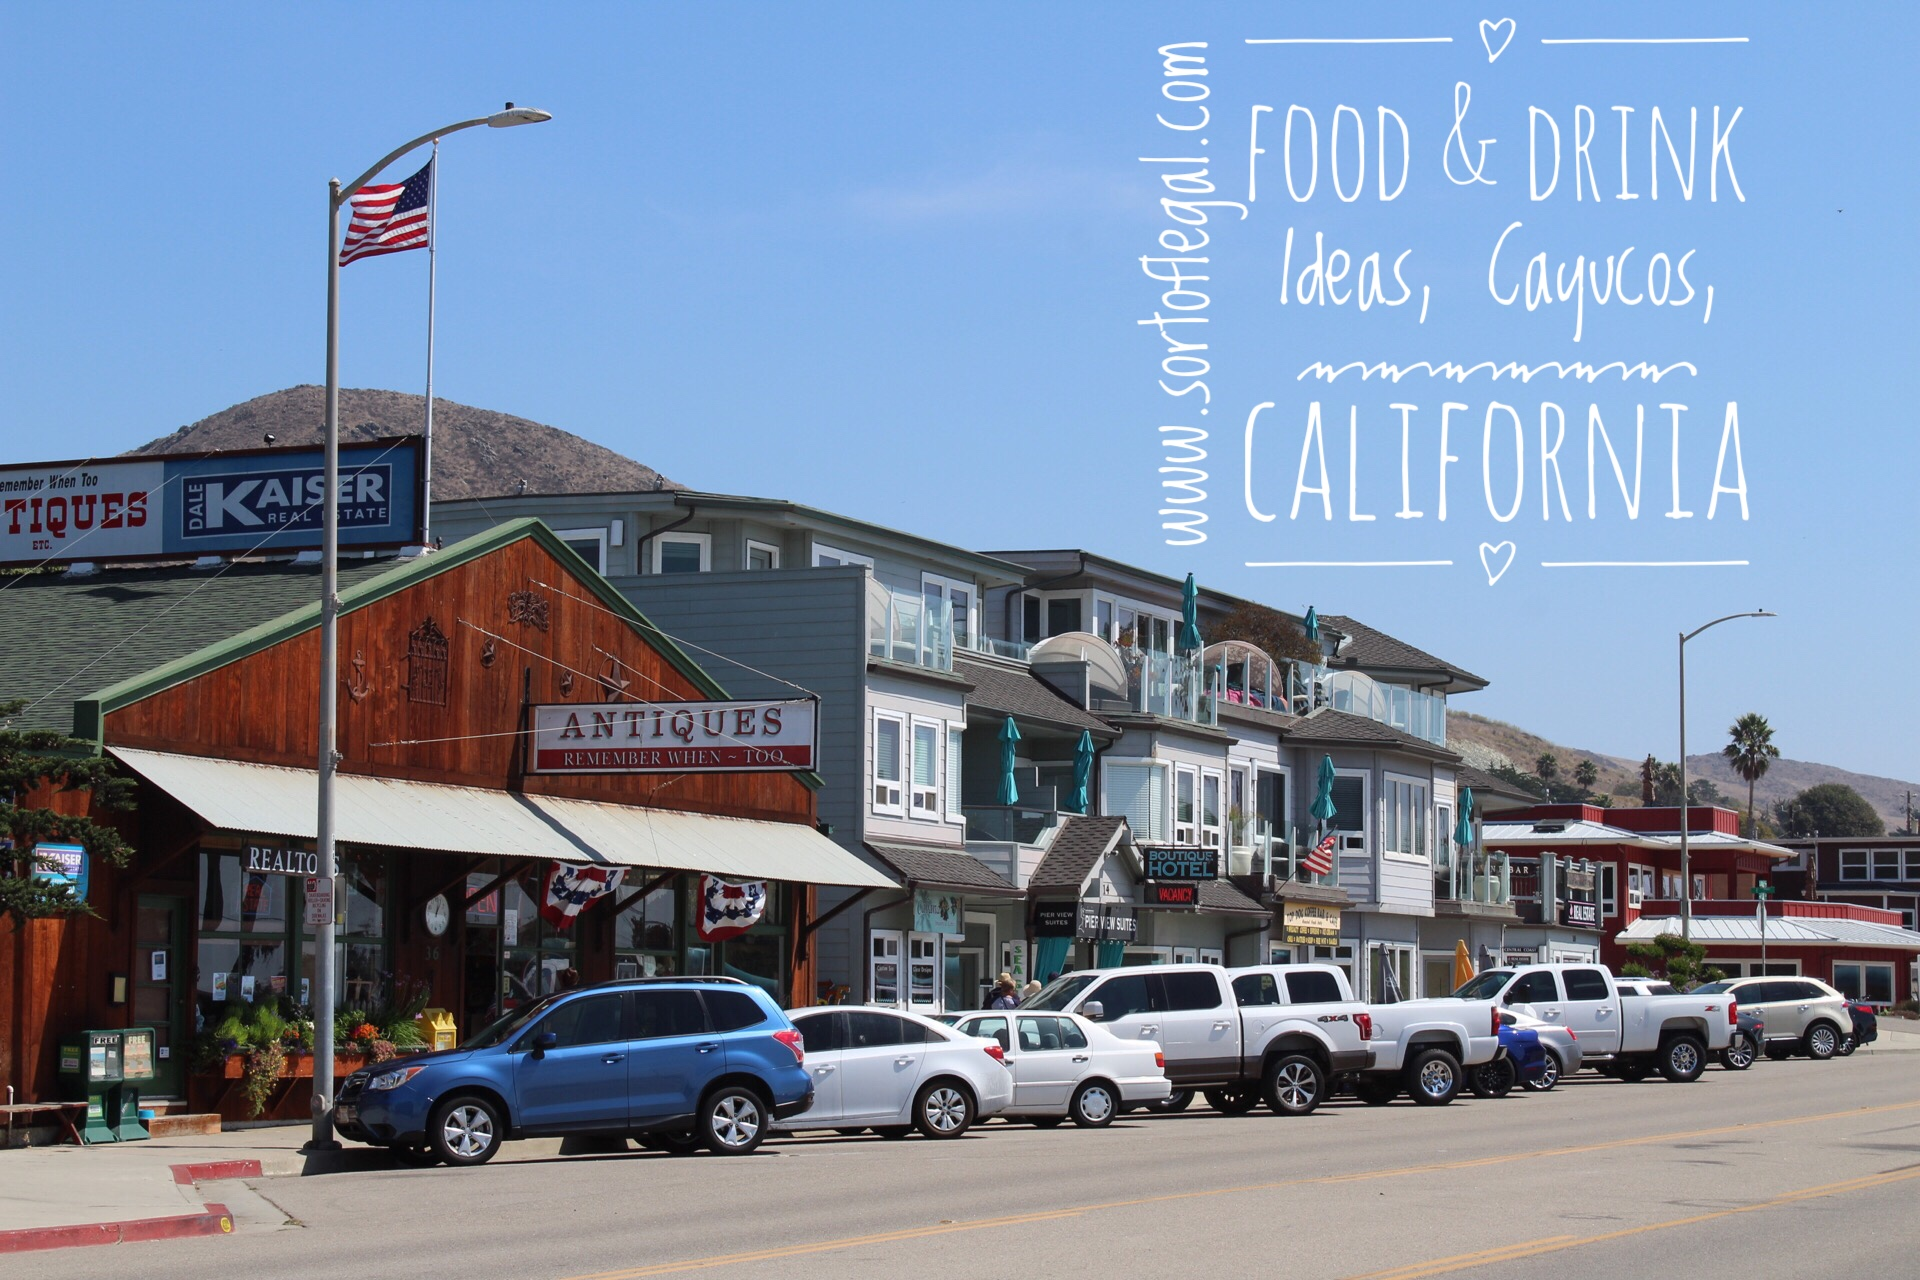 Where to Eat, Drink, & Be Merry in Cayucos, California - Sort of Legal